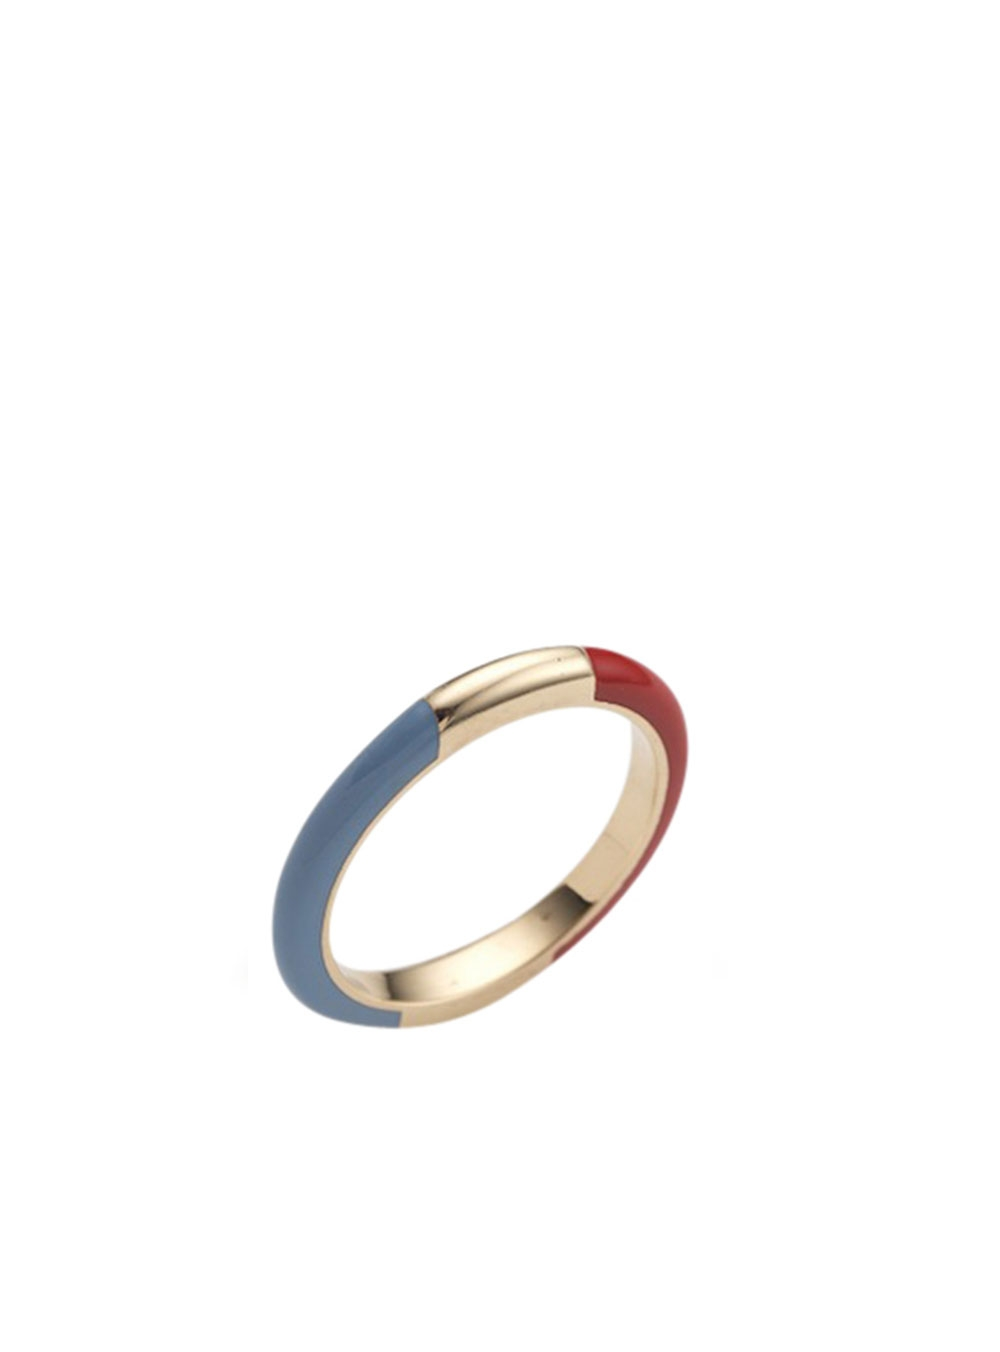 BAGUE CANDY LACQUER 14K OR BLANC